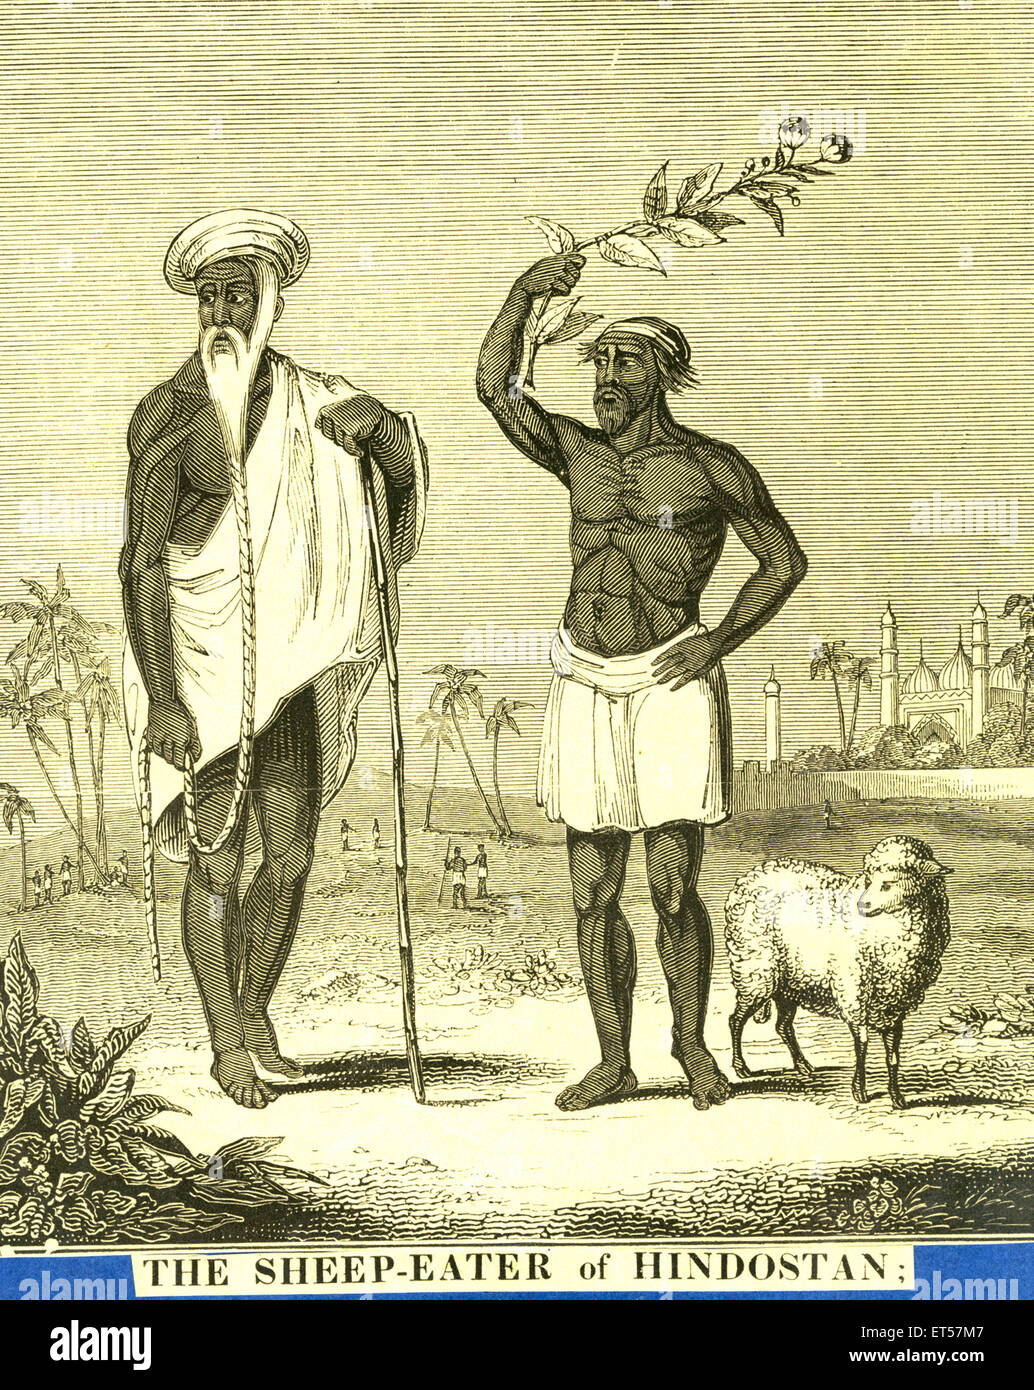 The Sheep eater of Hindustan ; India - Stock Image